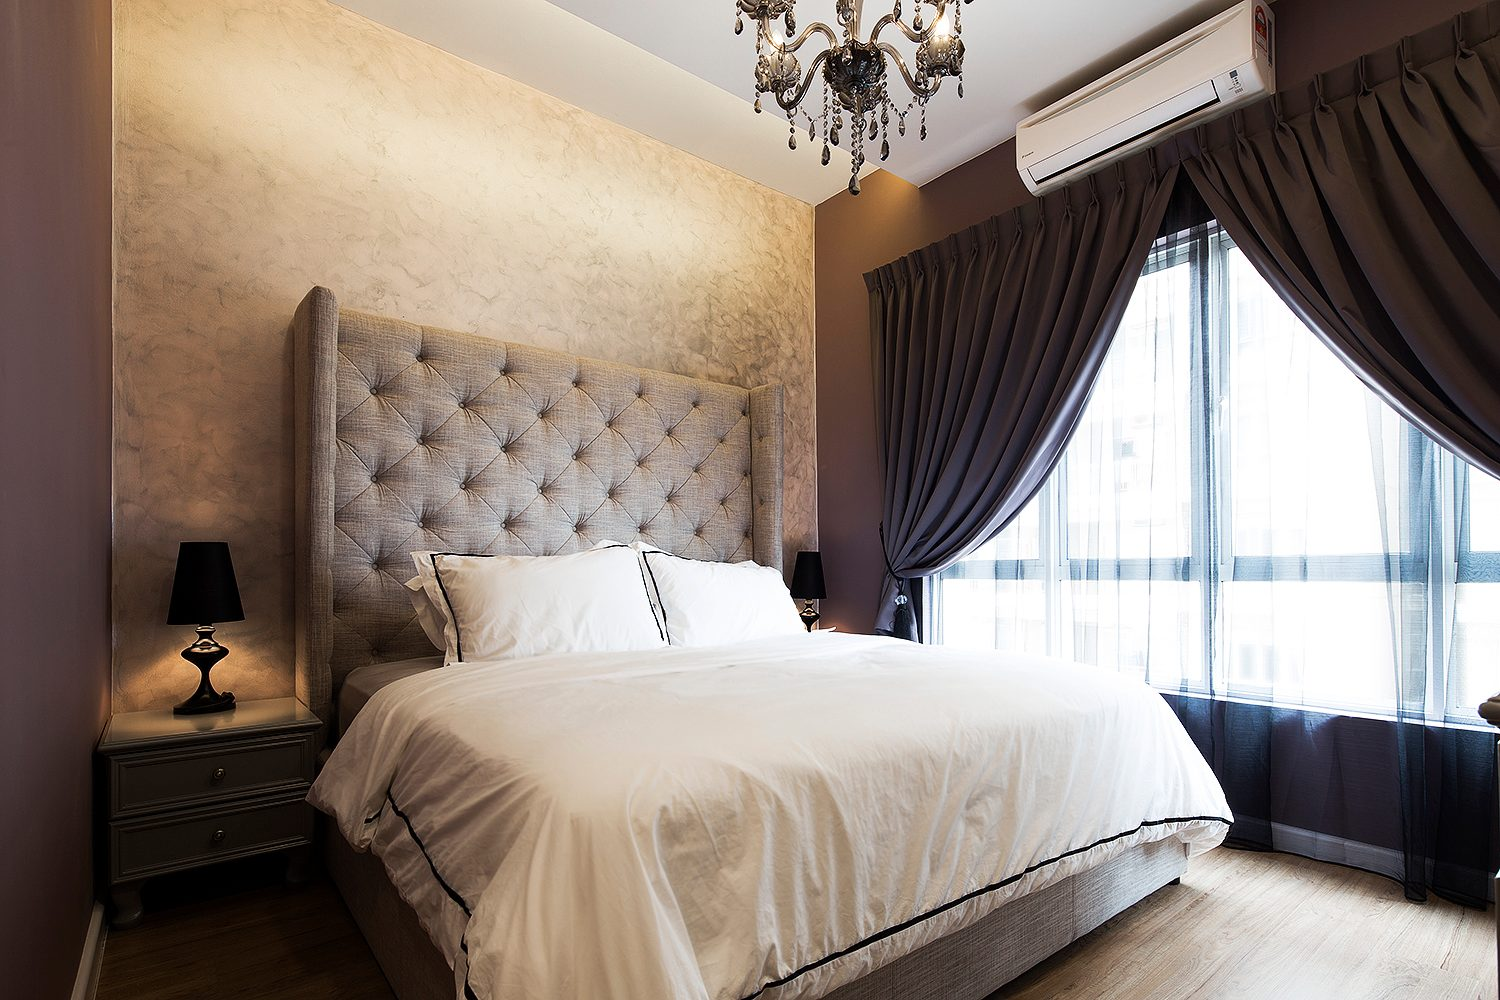 Tufted headboard with wingback effect for this bedroom in Mont Kiara